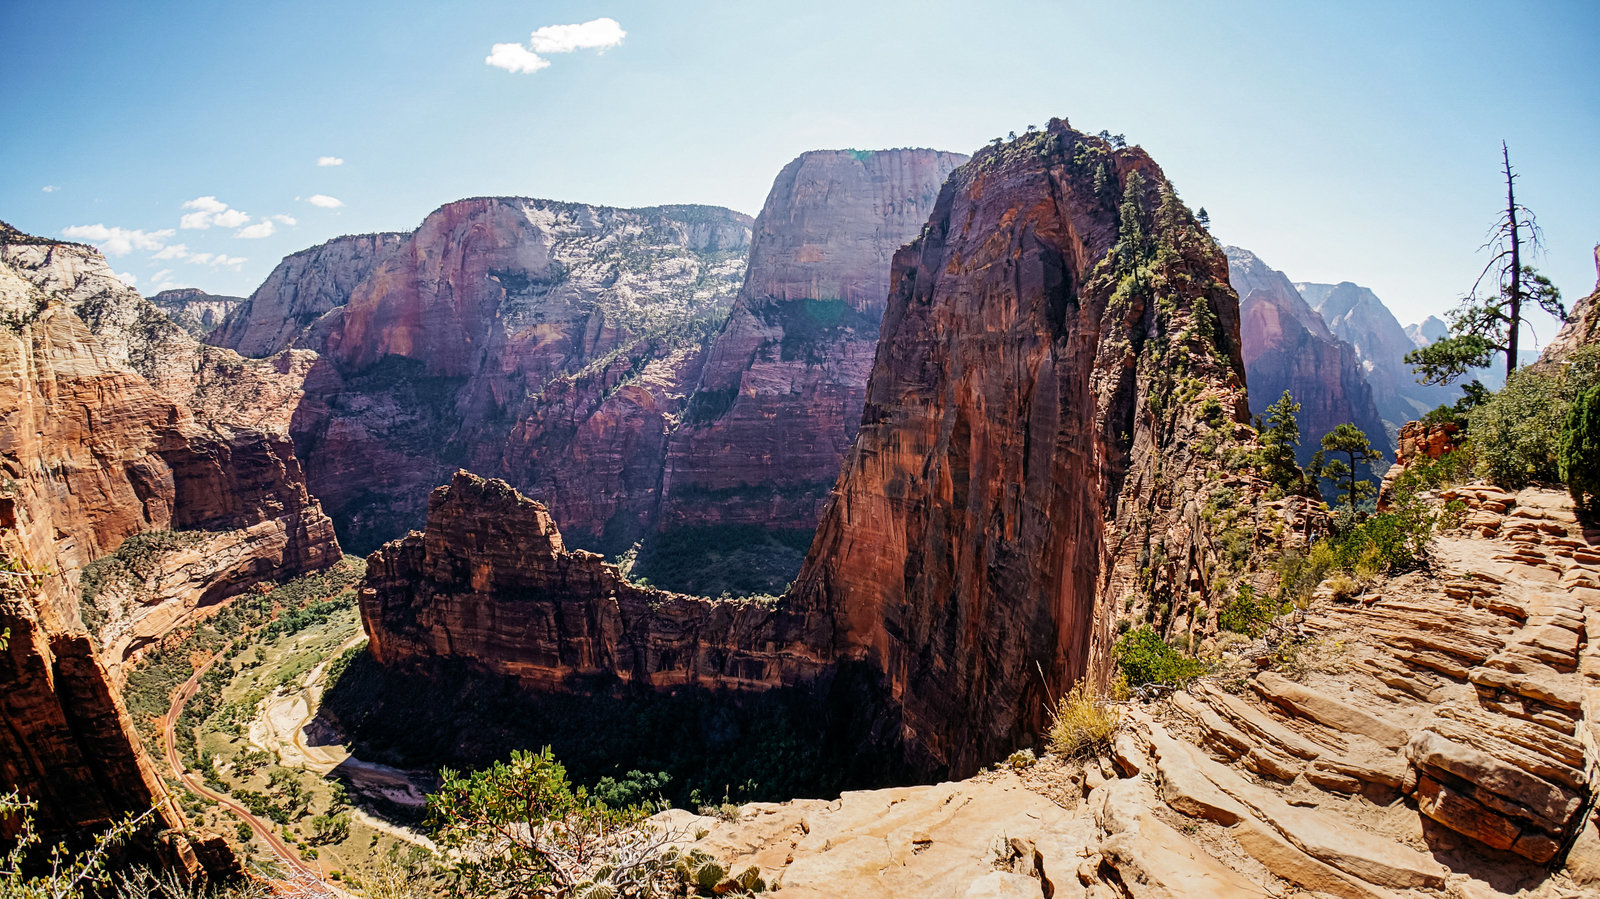 Sasha_Reiko_Photography_Travel_Utah_Arches_Canyon_Lands_Zion_Grand_Canyon-64